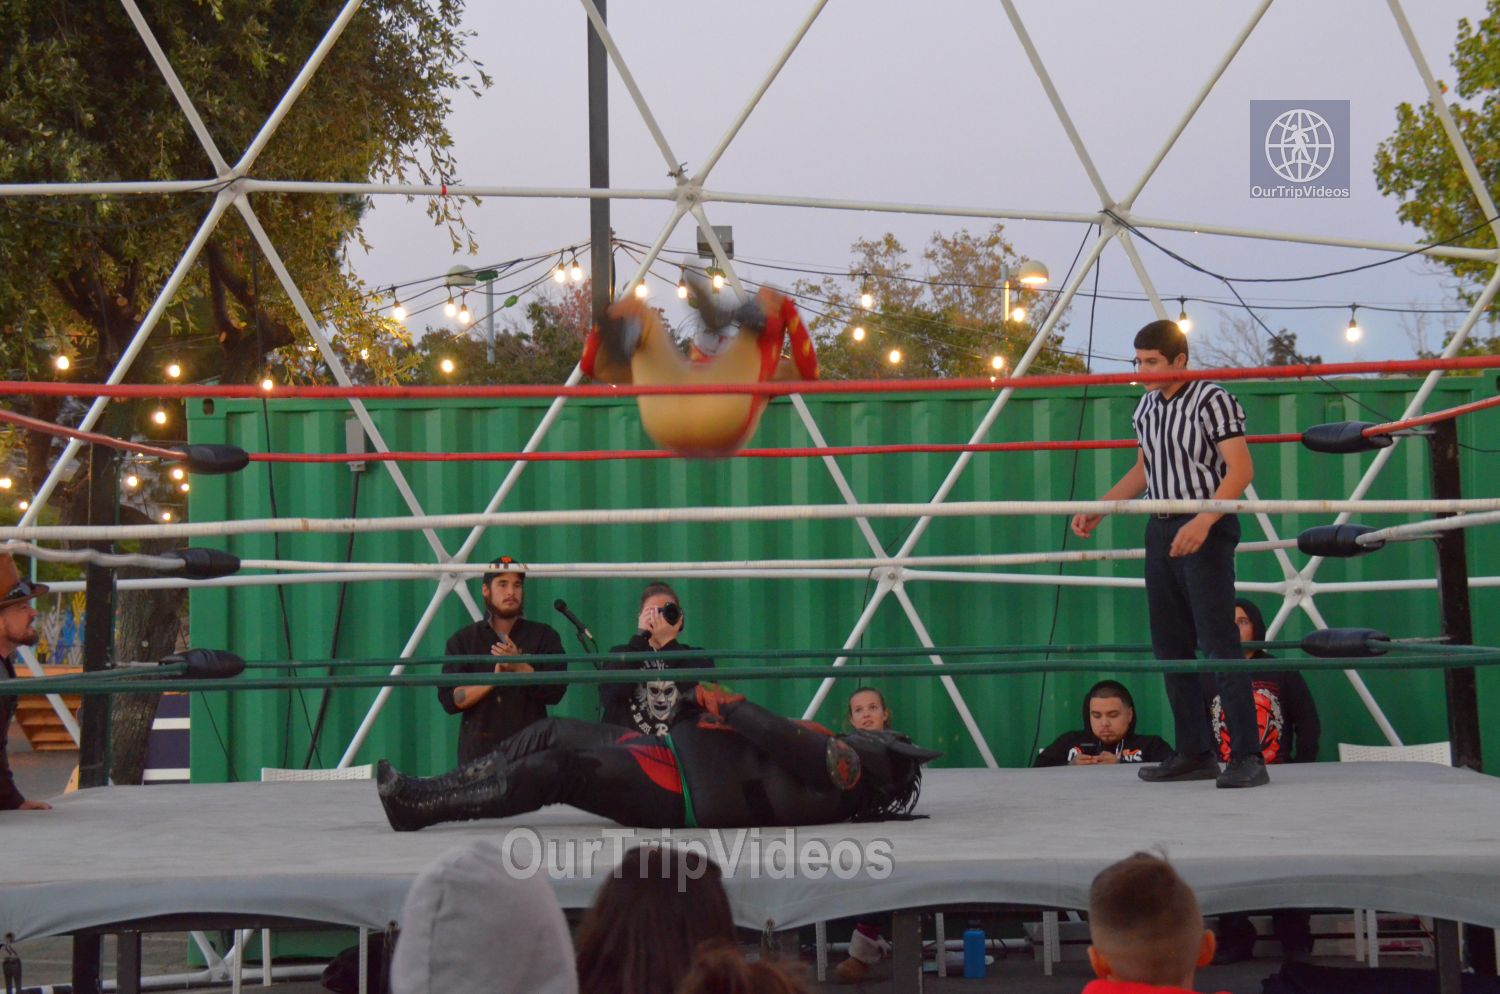 Throwdown at the Thunderdome (Luchador Wrestling), Fremont, CA, USA - Picture 15 of 25